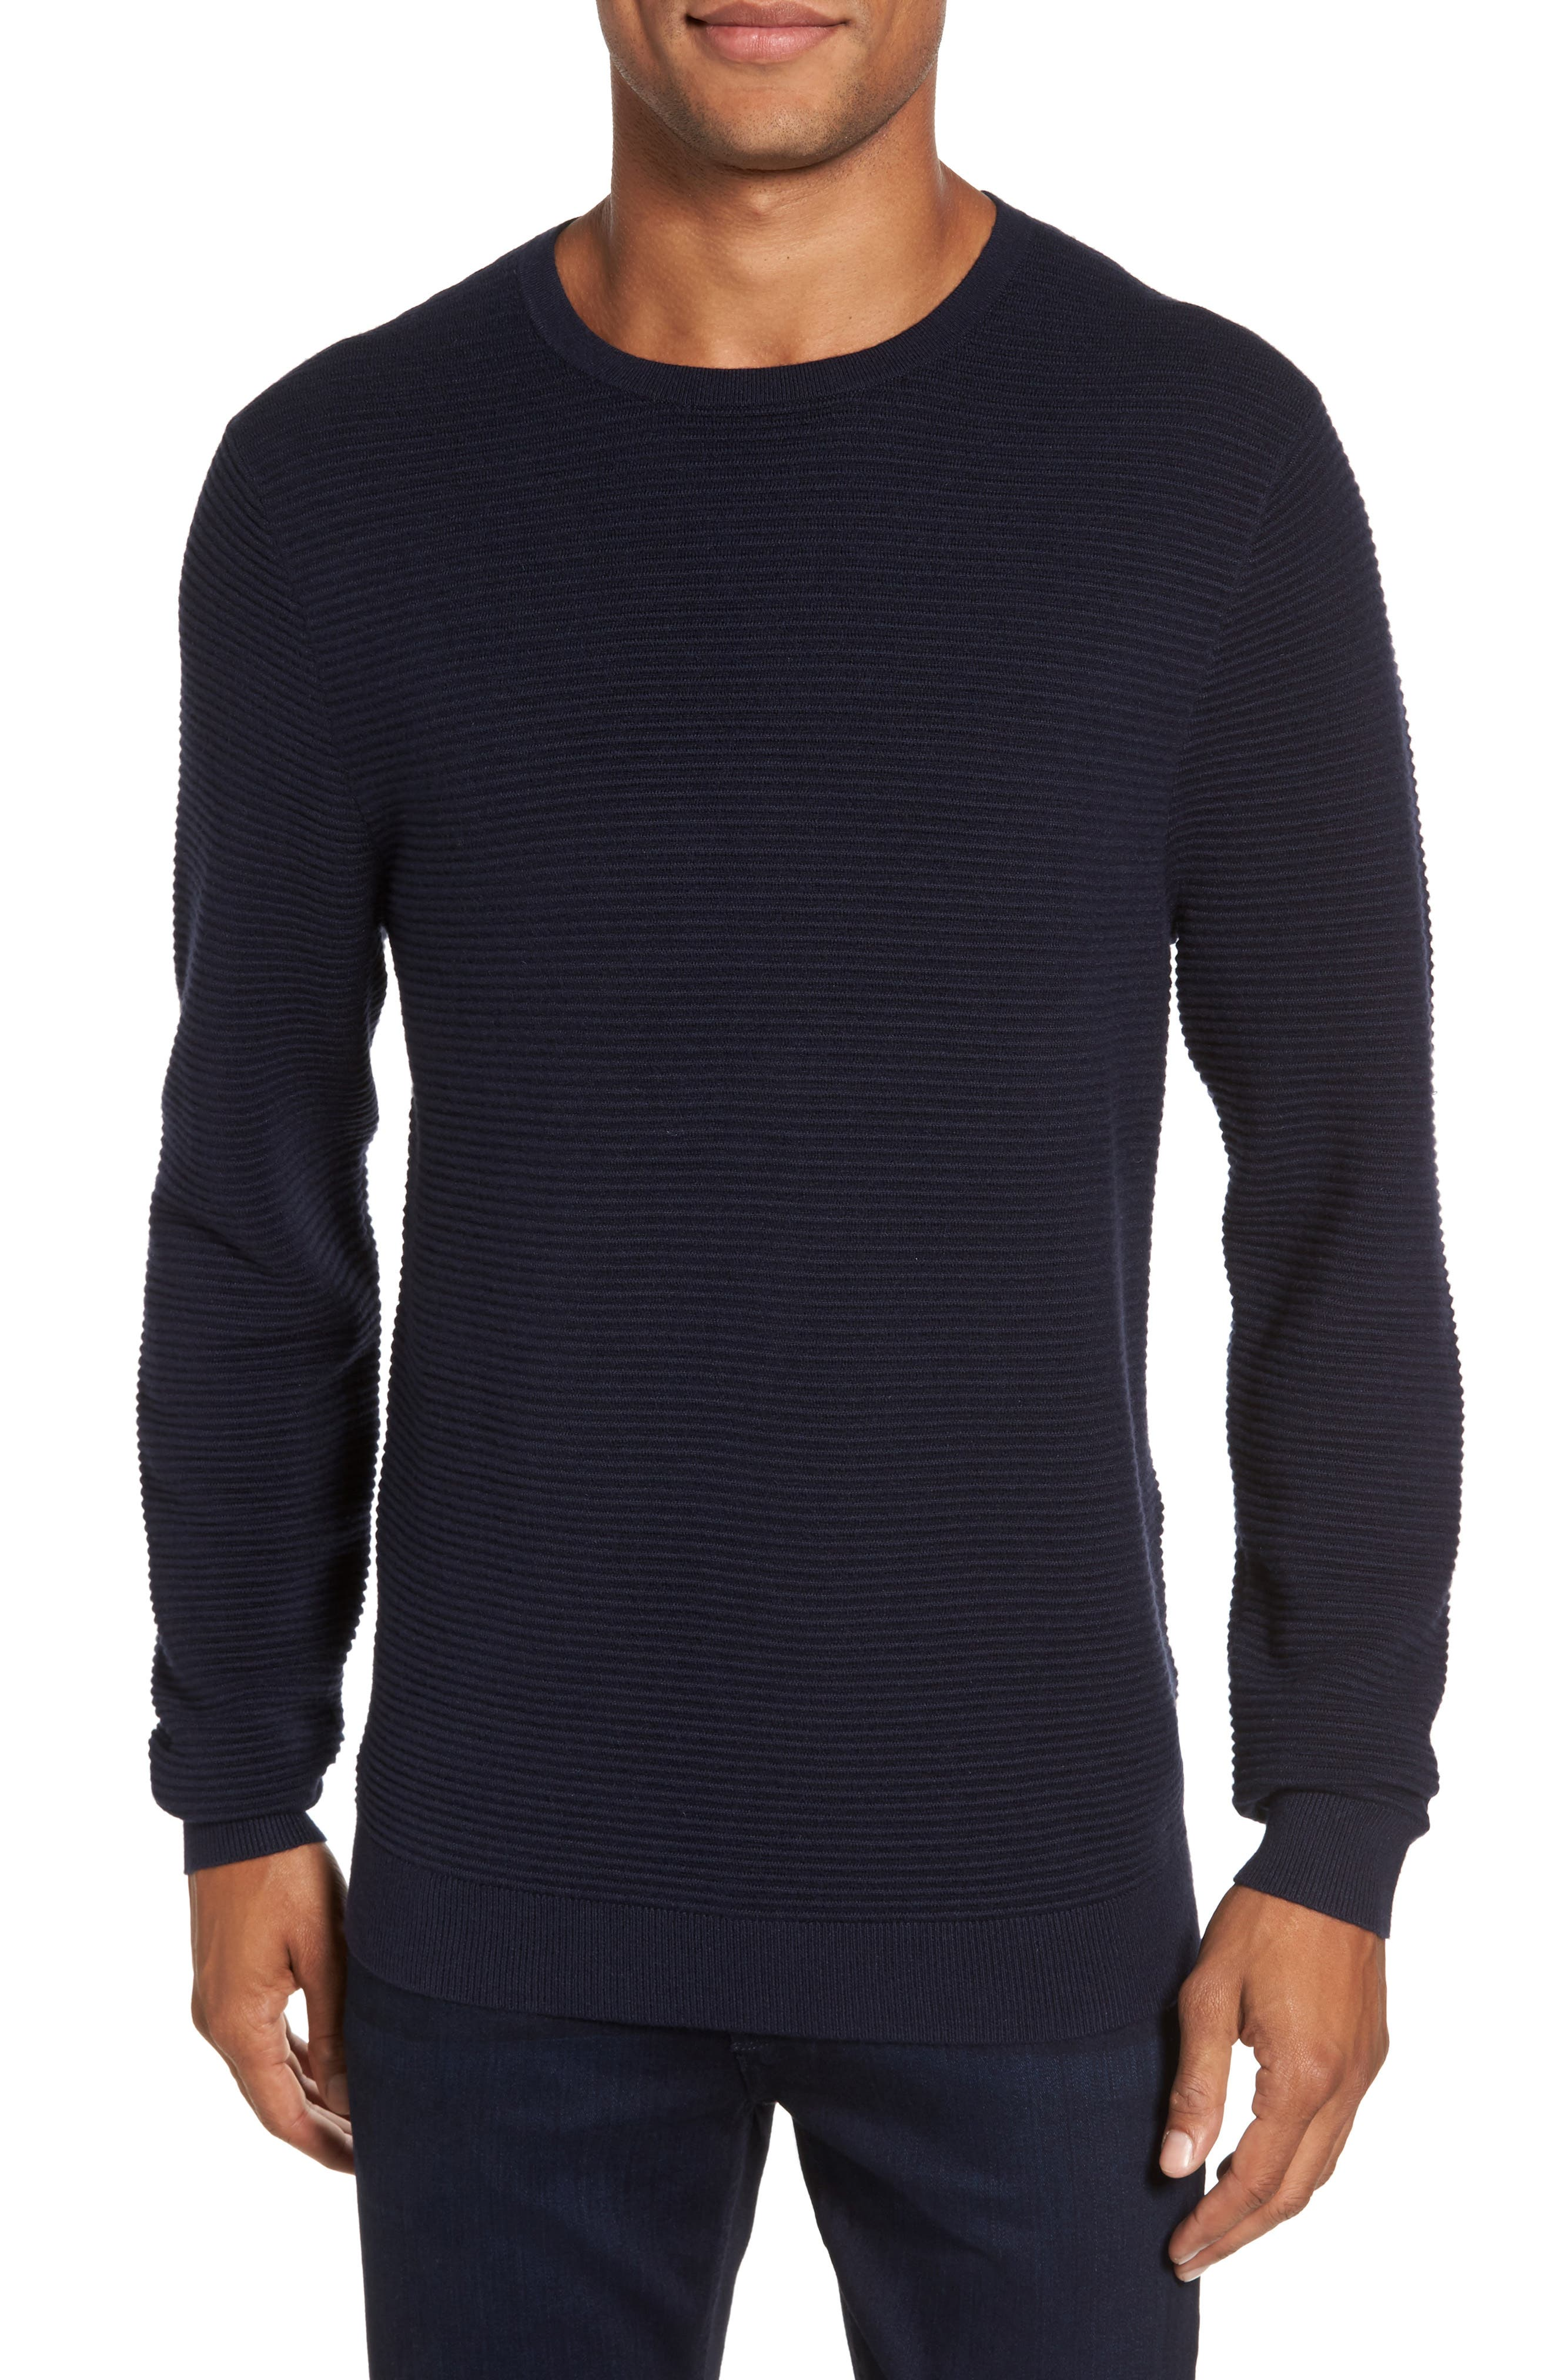 Ottoman Ribbed Crewneck Sweater,                             Main thumbnail 2, color,